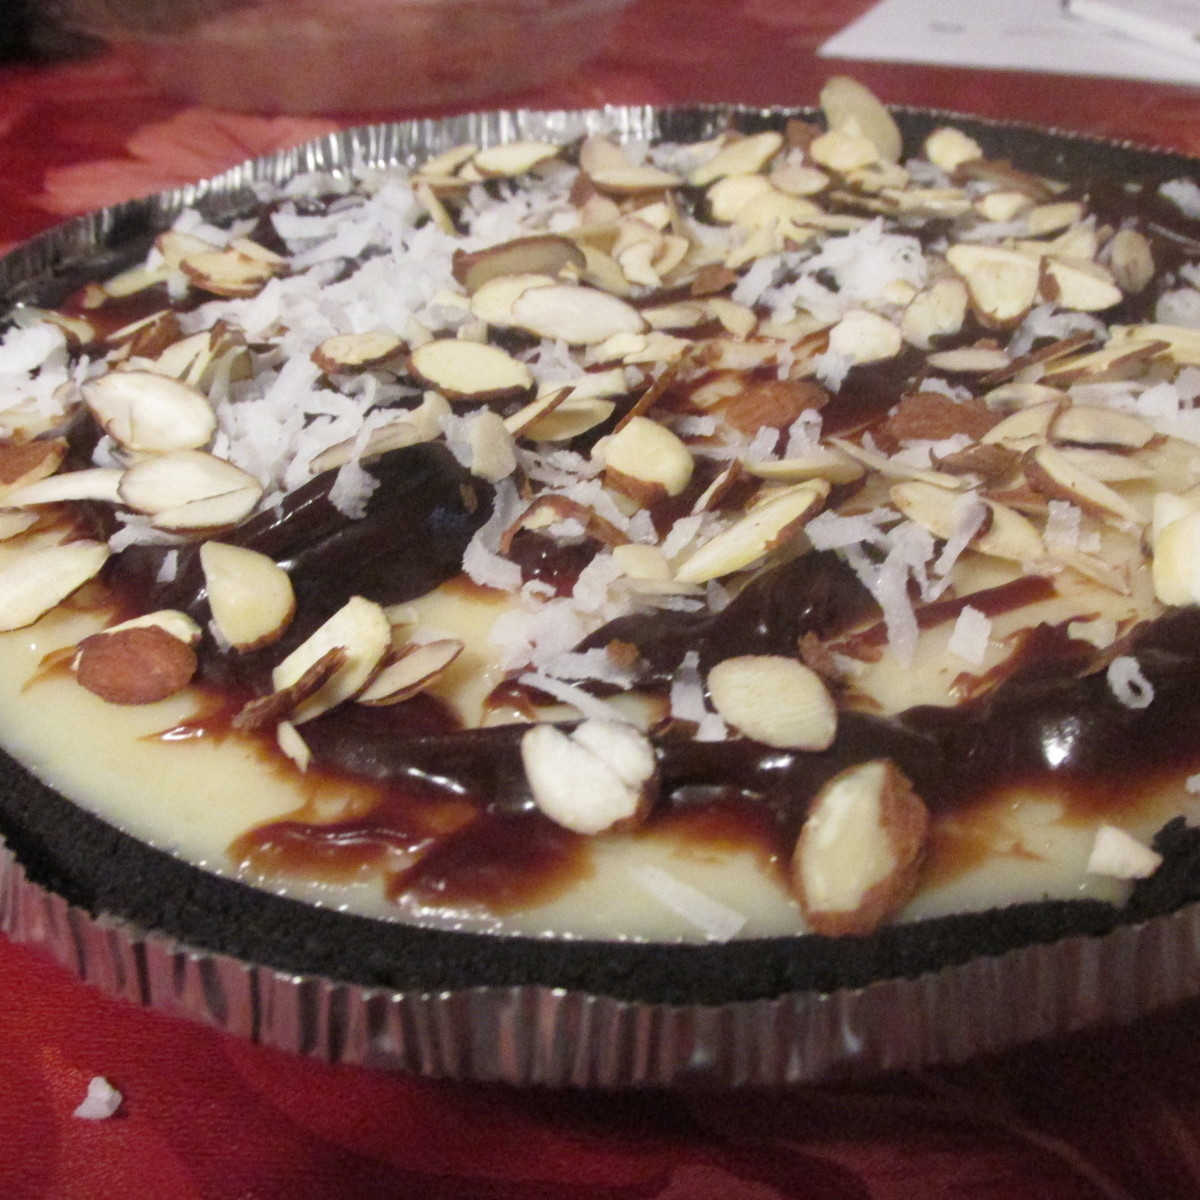 Pie with toppings.